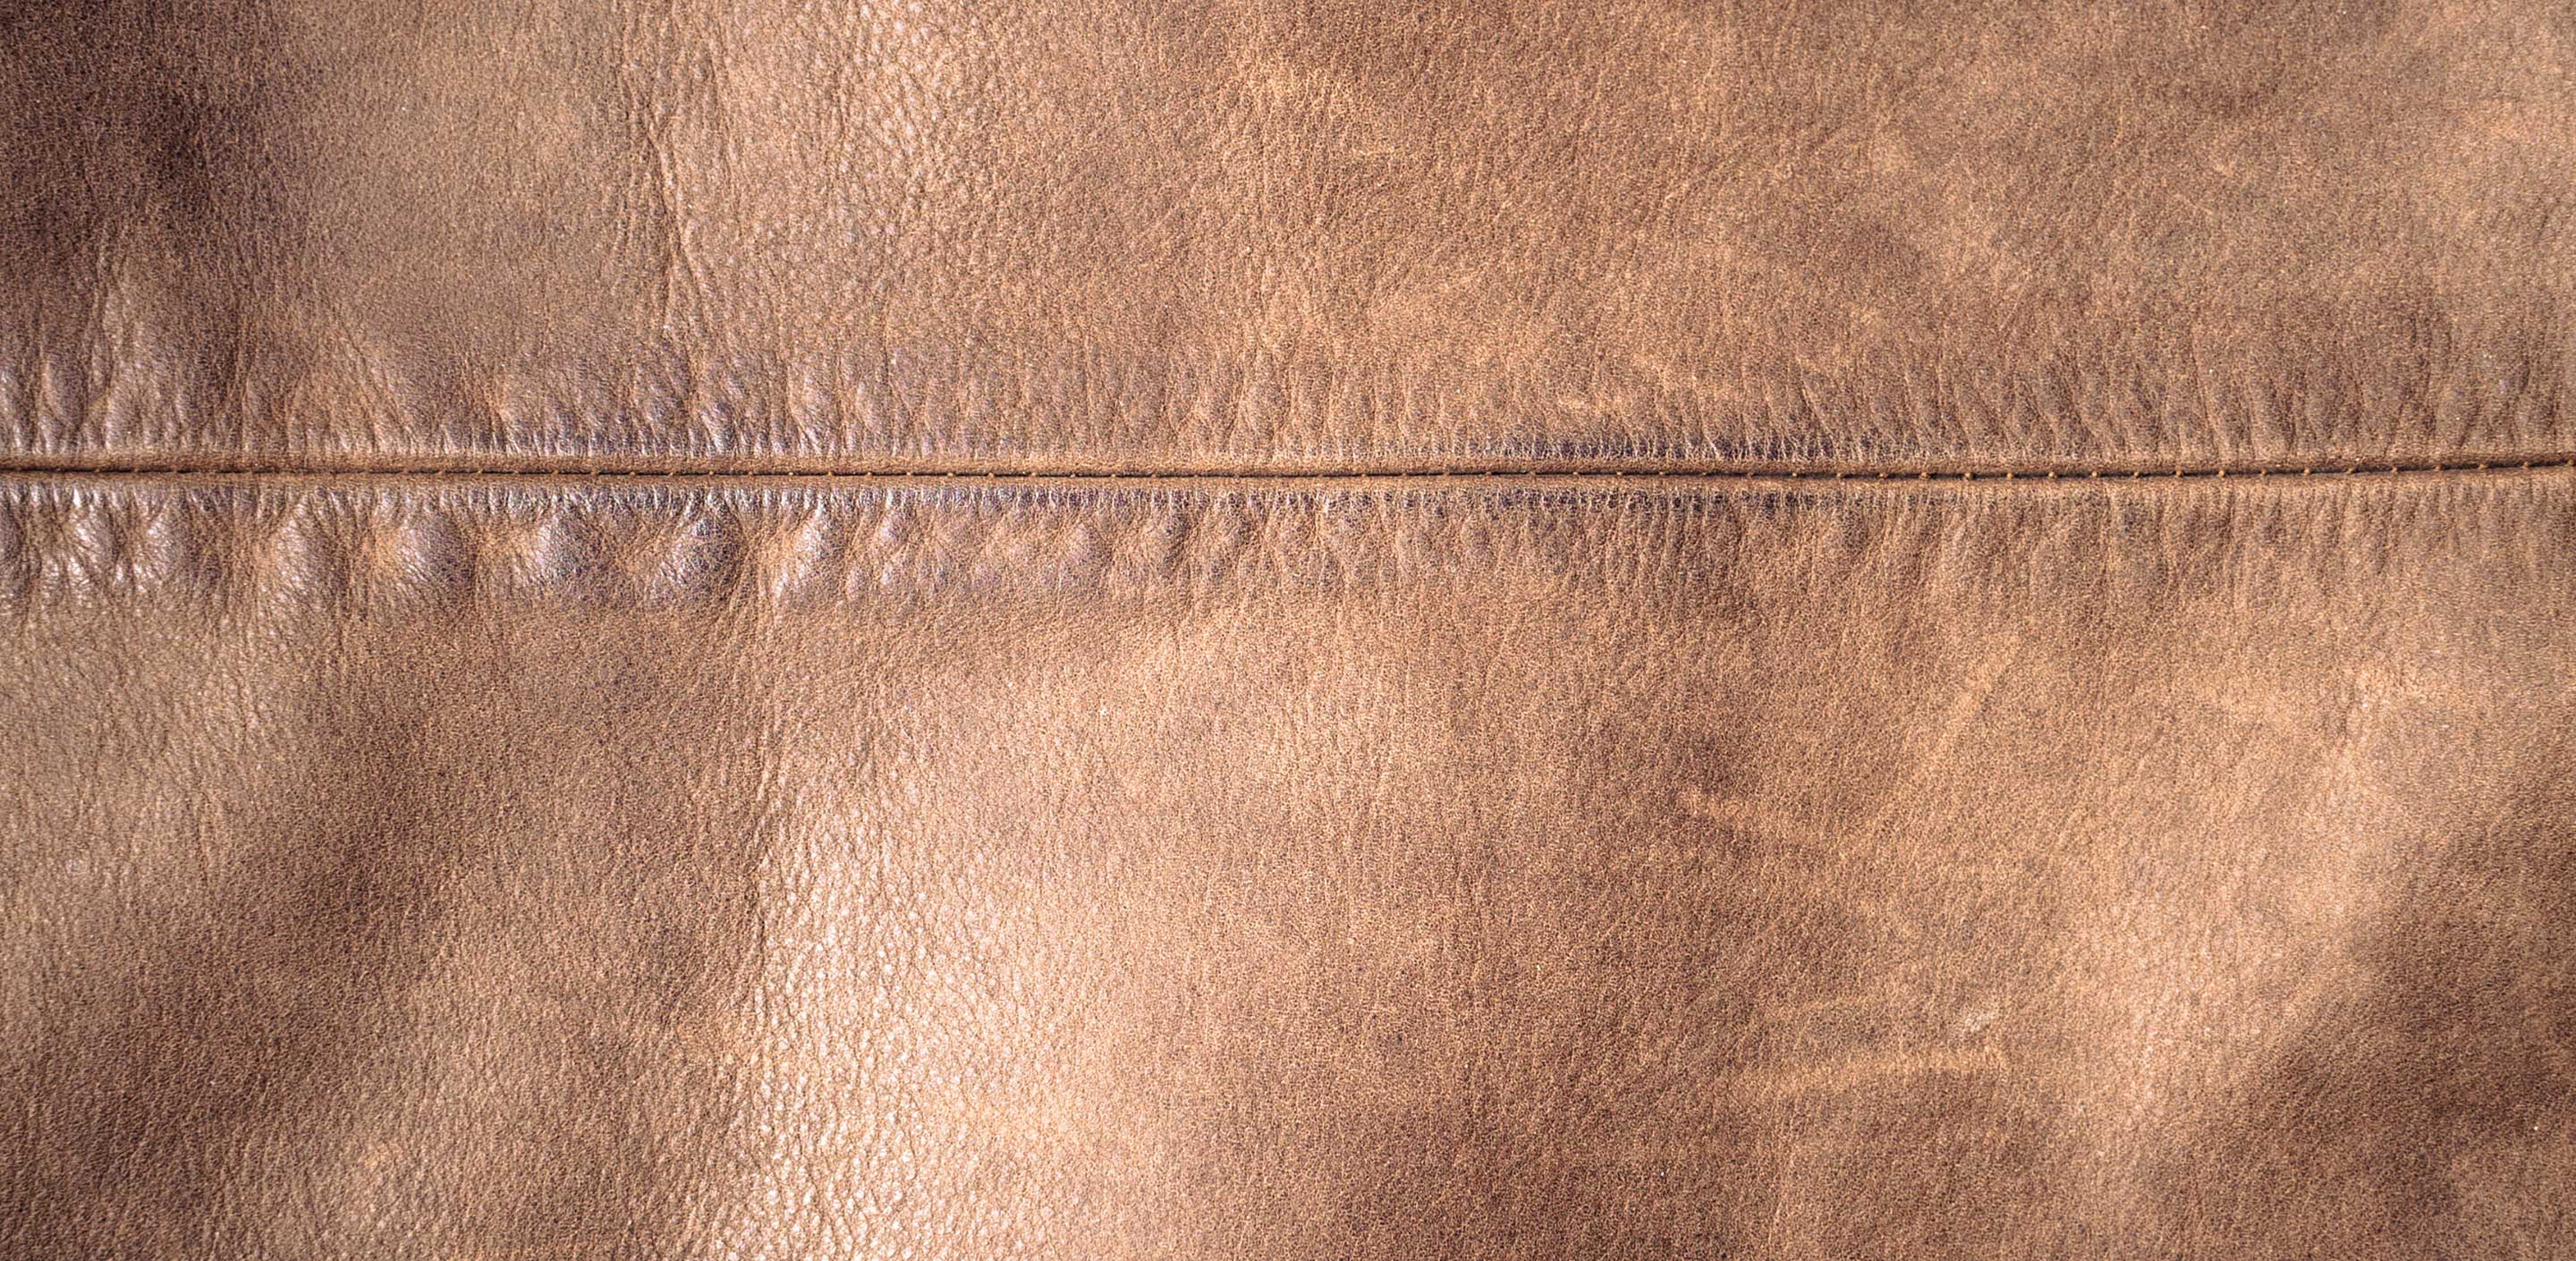 What Is Distress Leather